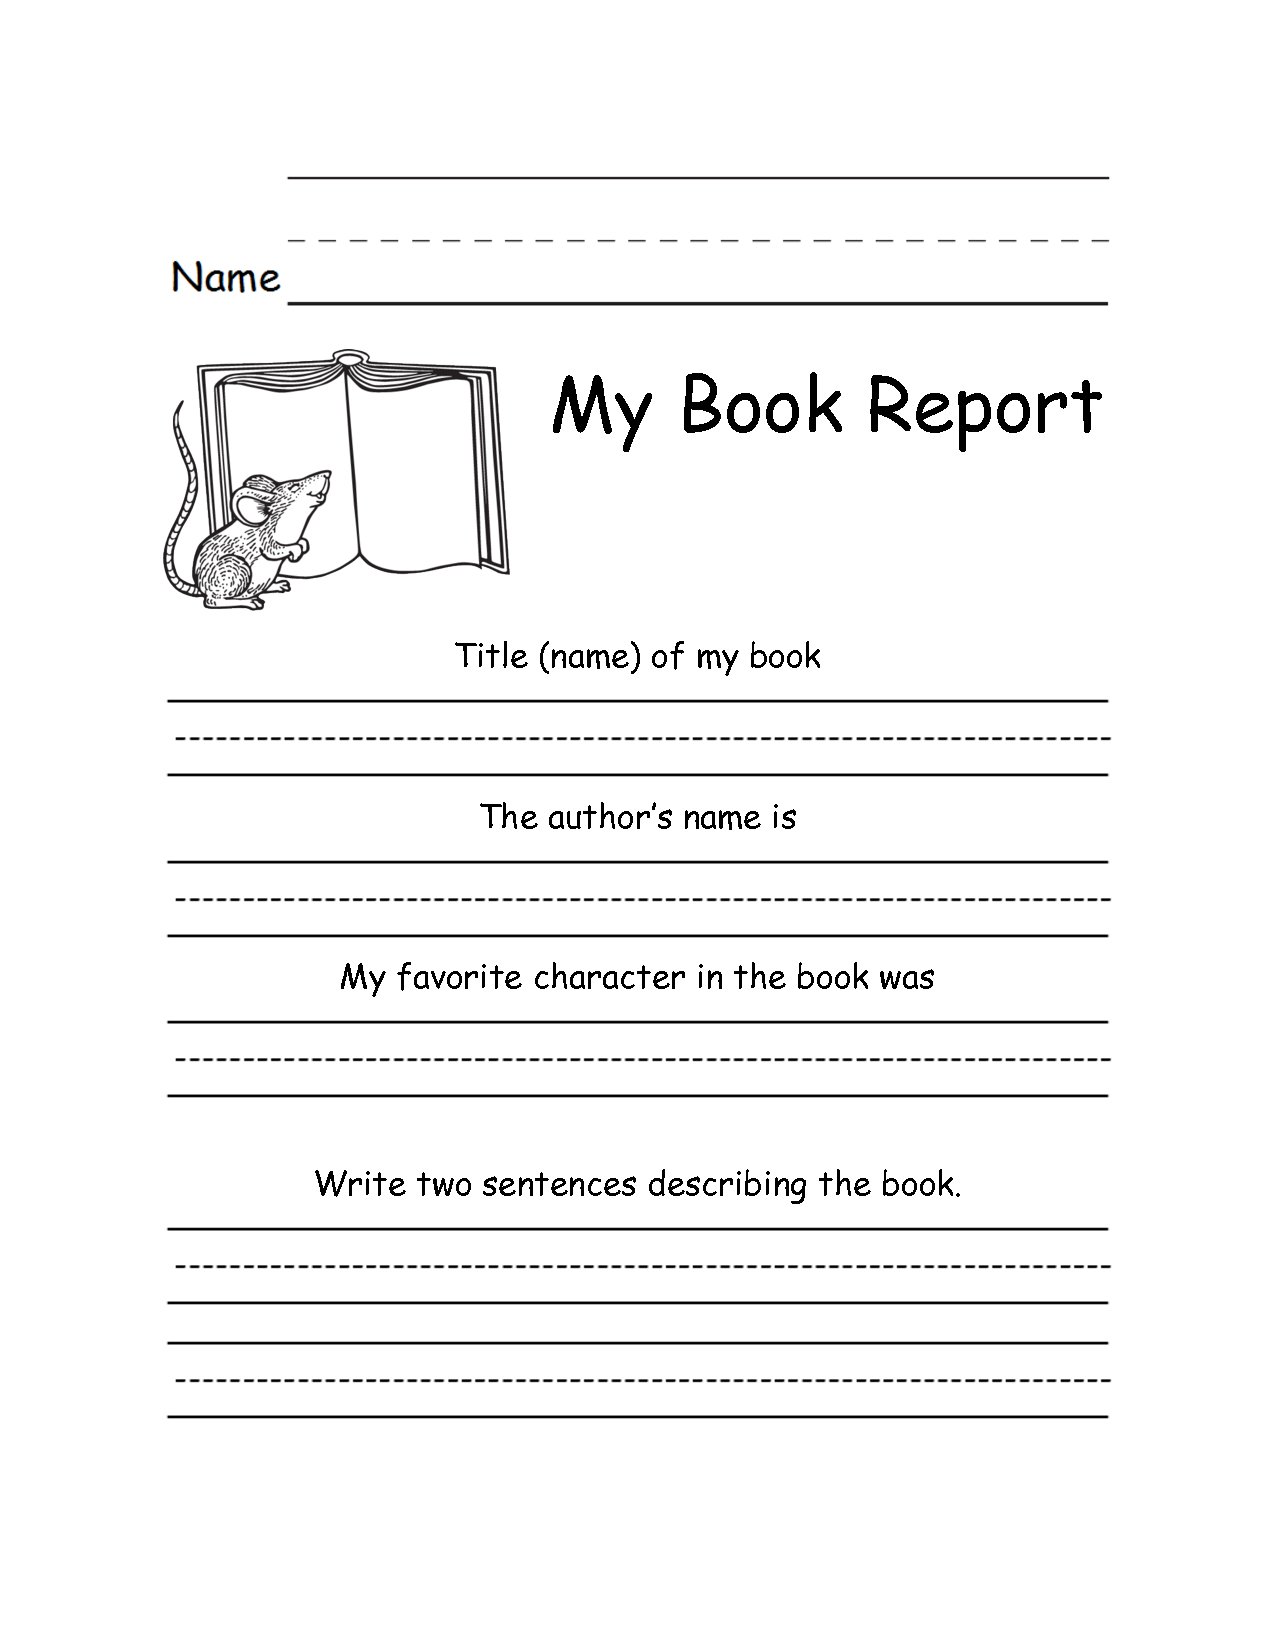 Worksheet Free Printable Books For 2nd Grade free printable books for 2nd grade scalien